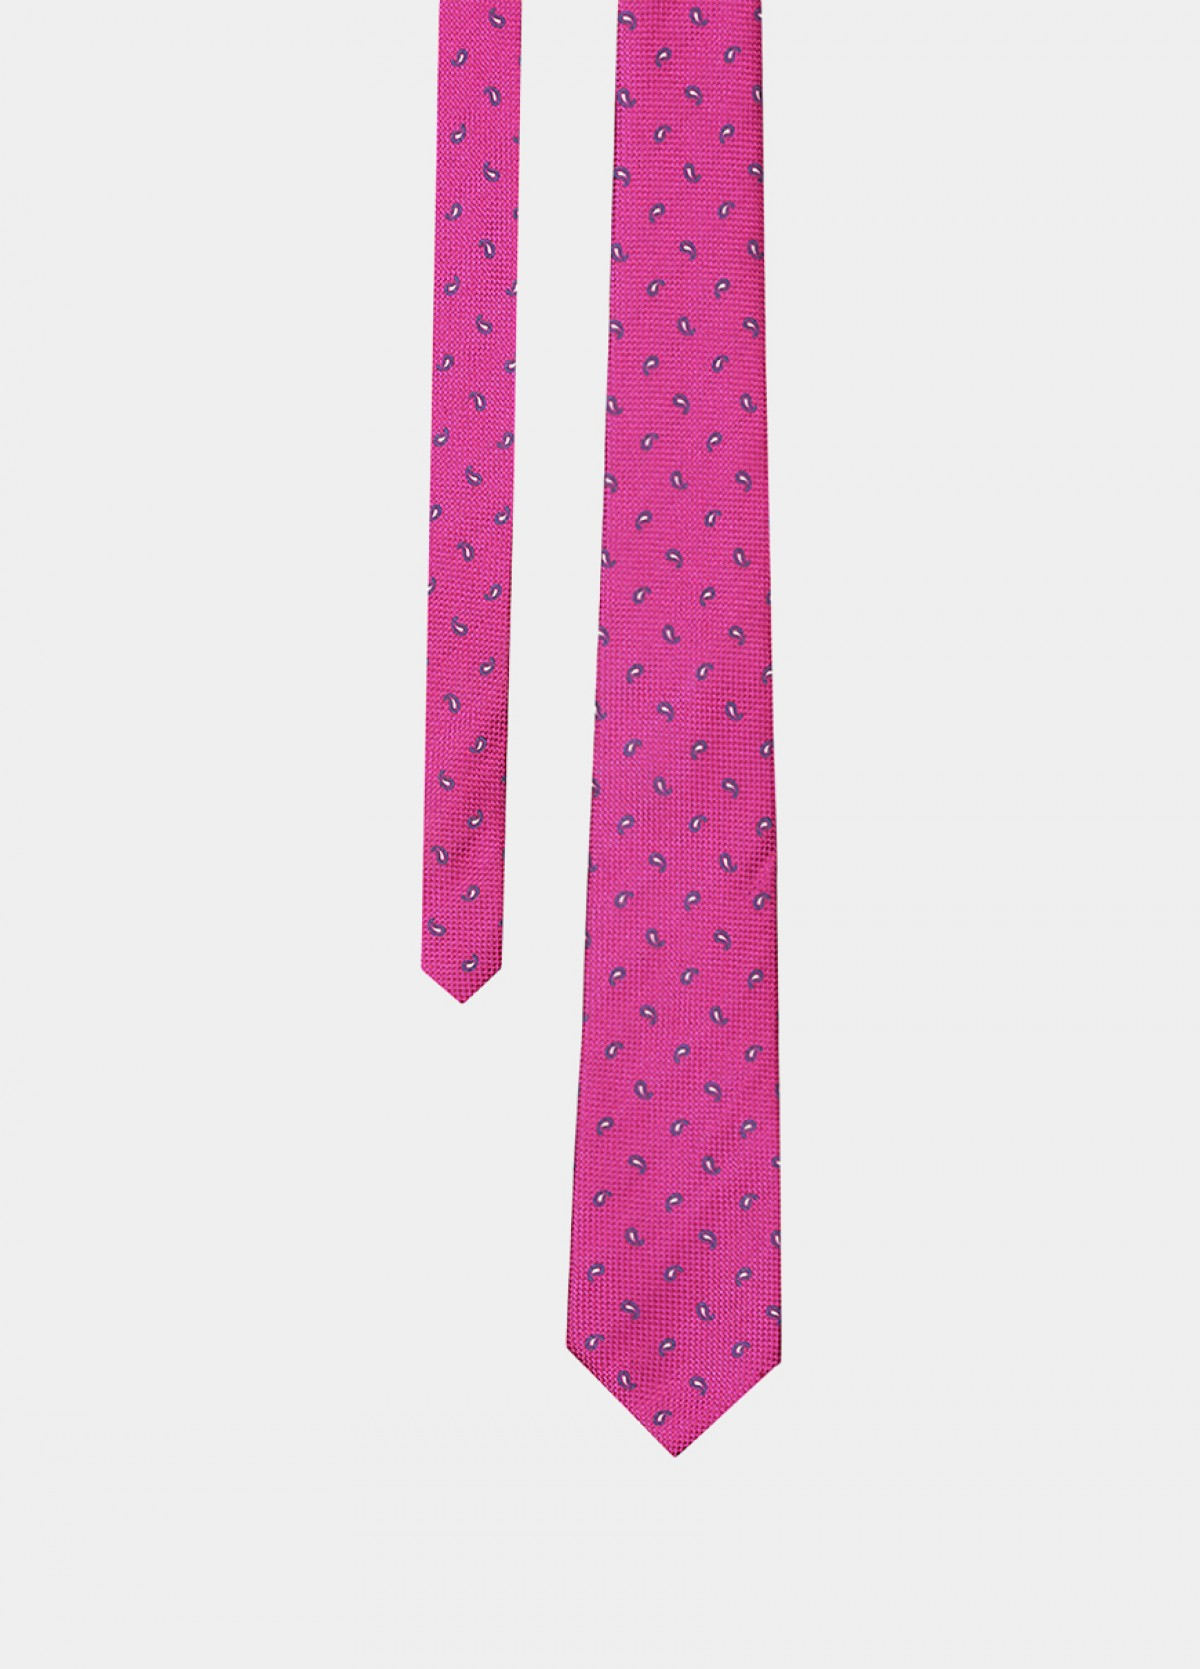 The Pink Fuchsia Stain Resistant Tie